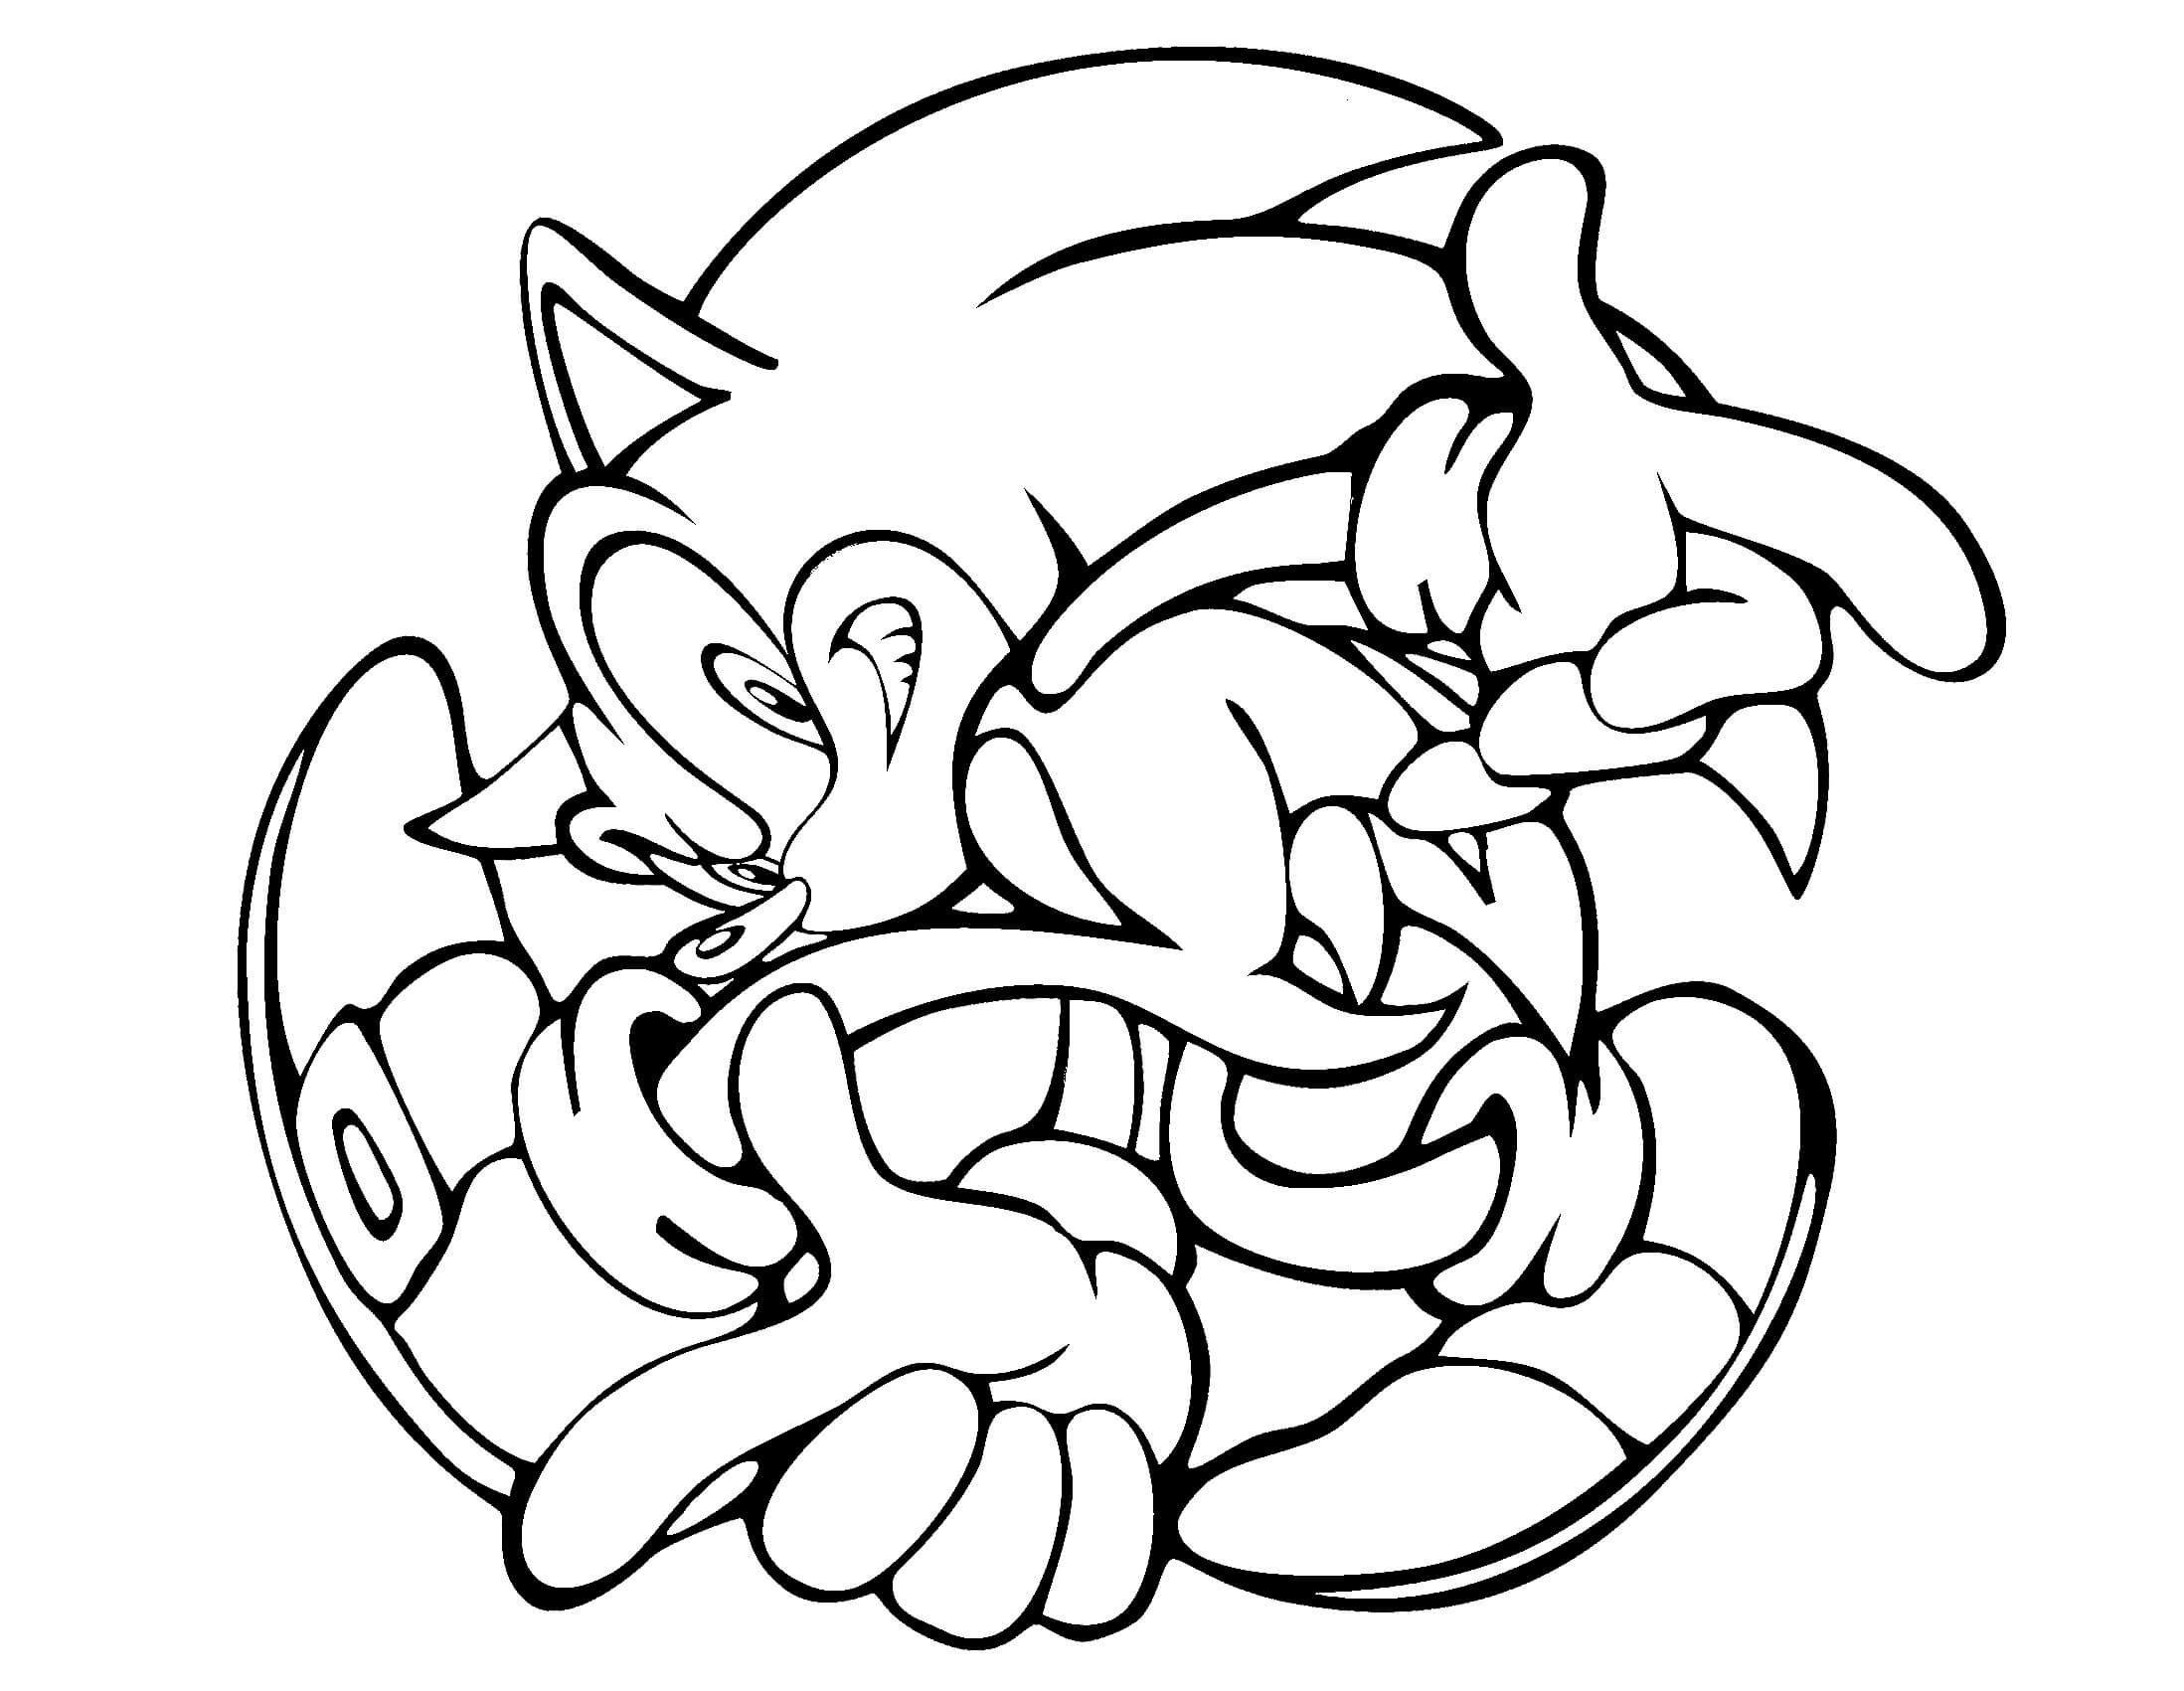 Sonic Coloring Pages Free Printable Hedgehog Colors Cartoon Coloring Pages Coloring Pages